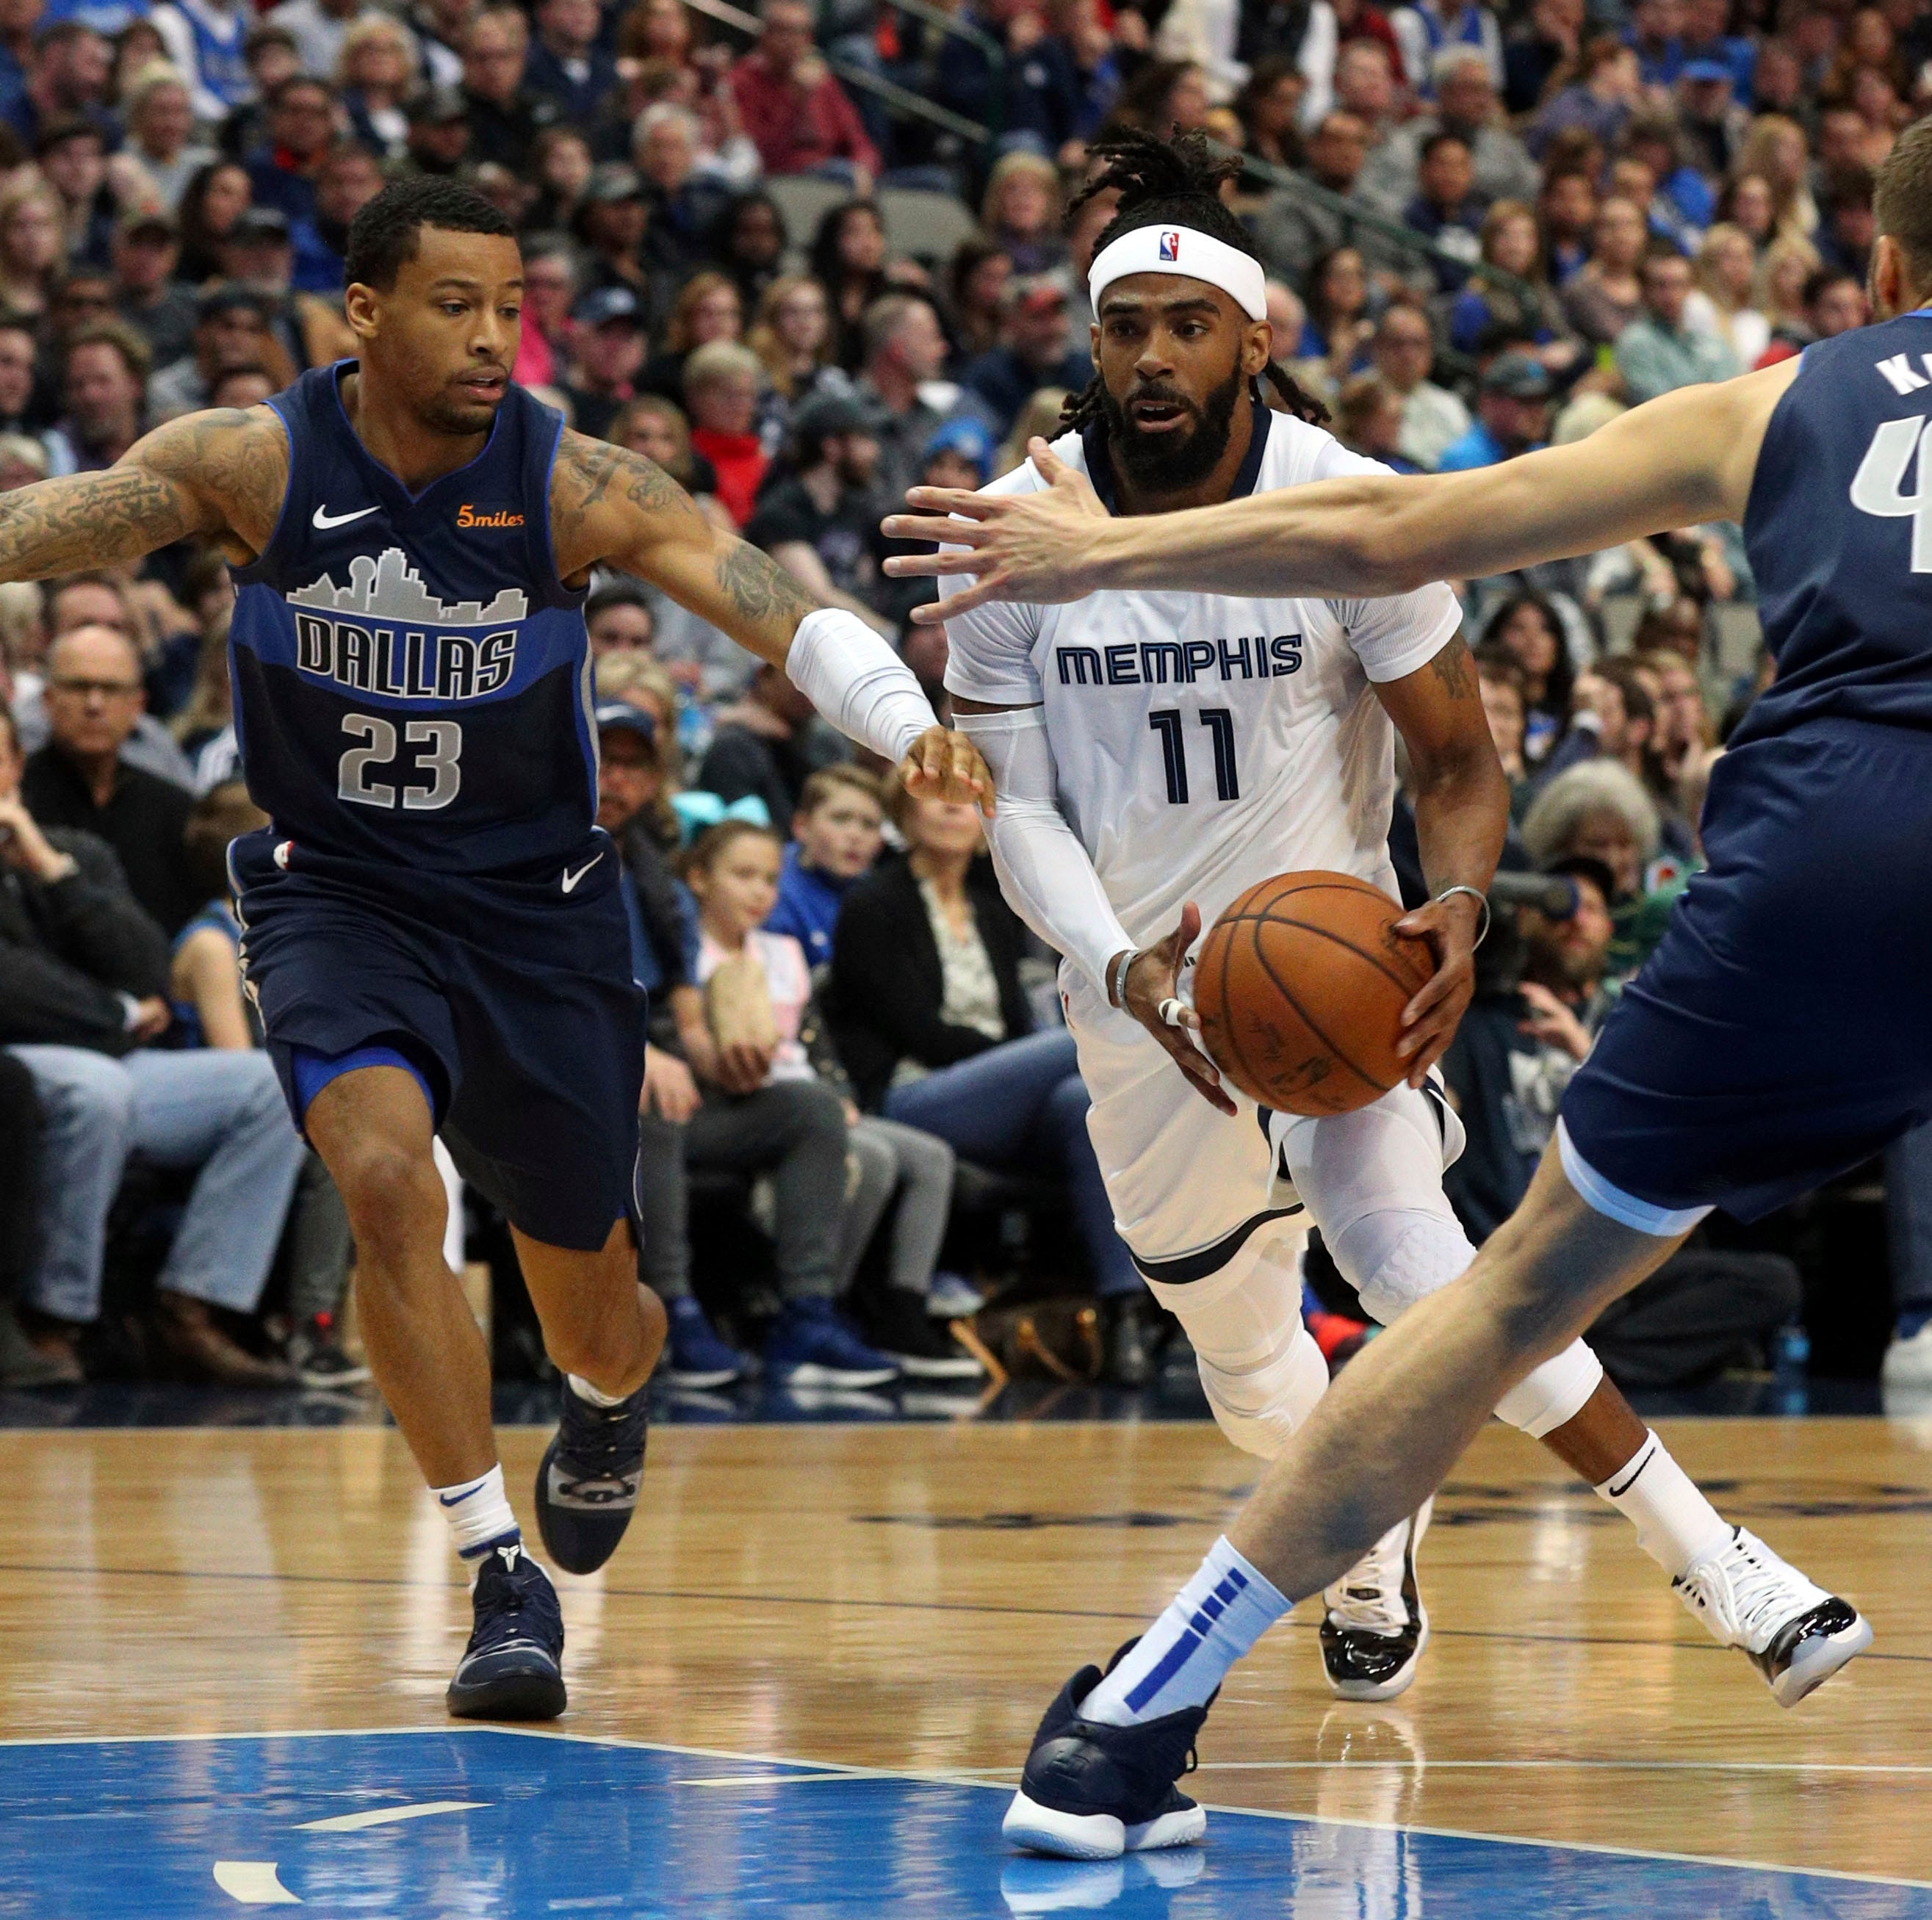 Memphis Grizzlies games vs Dallas Mavericks may have long-term implications